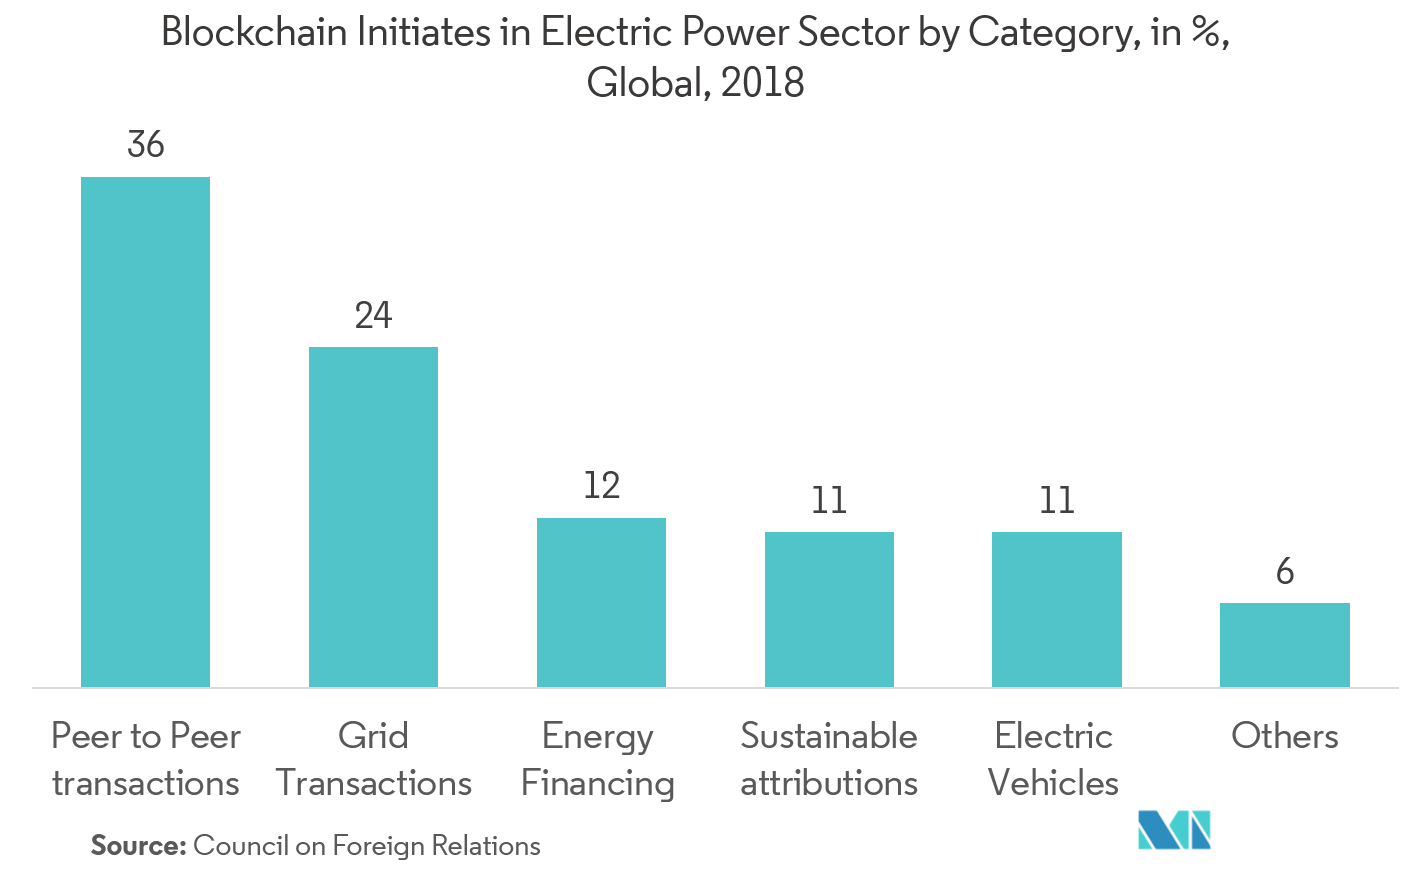 blockchain market in the energy sector